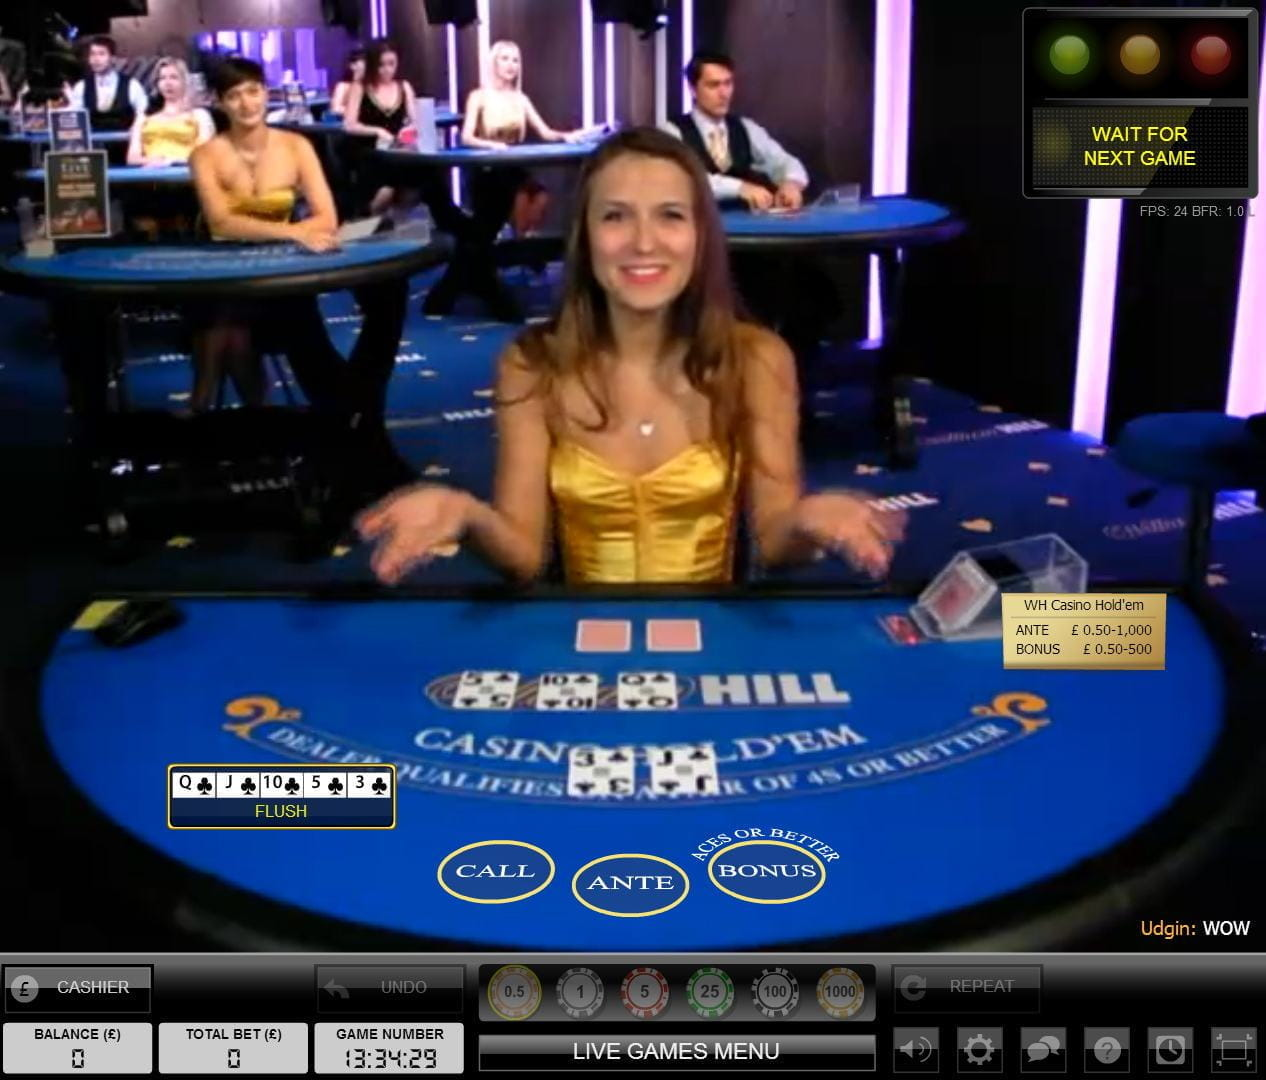 HoGaming Live Dealer Games – Live Dealer Reviews